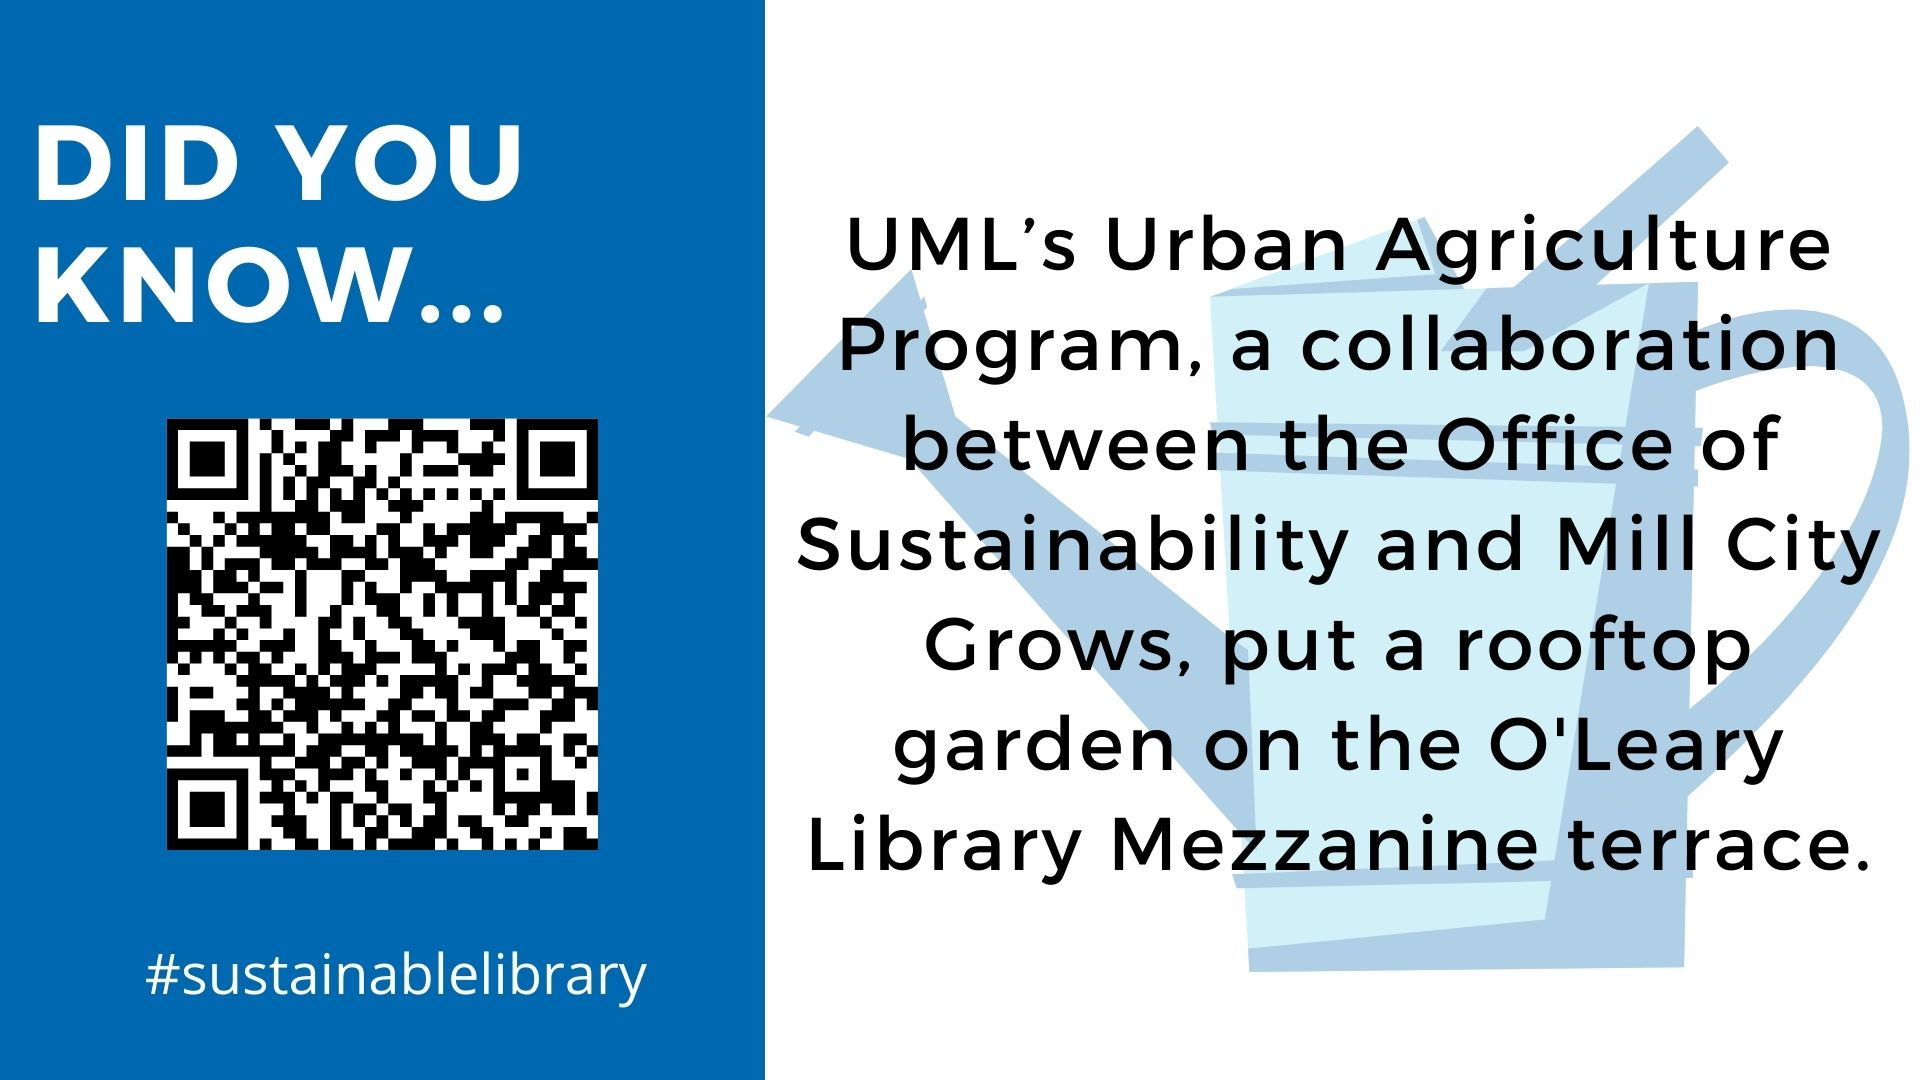 UML agriculture program creates a garden on the roof at O'Leary